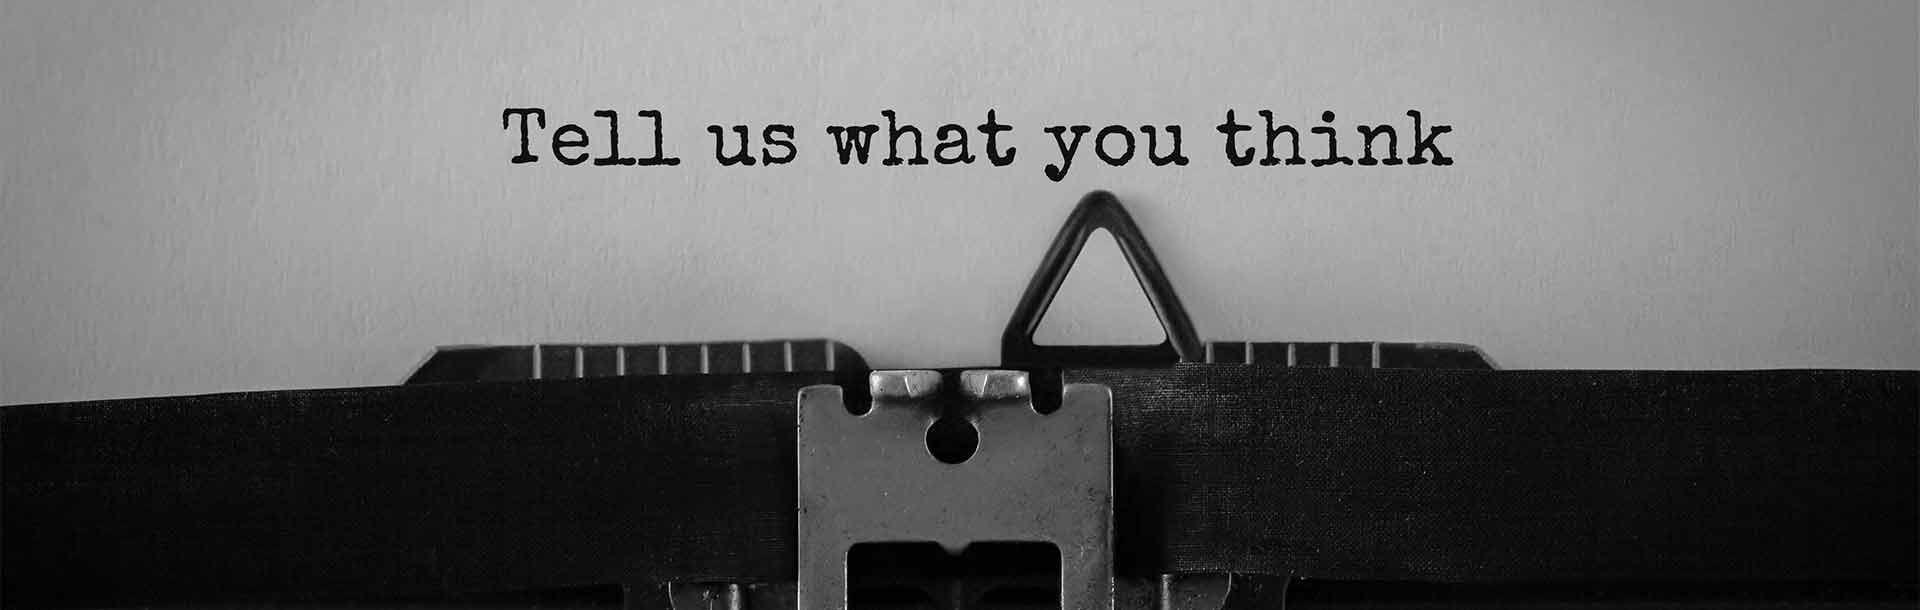 tell us what you think - confidential questionnaire